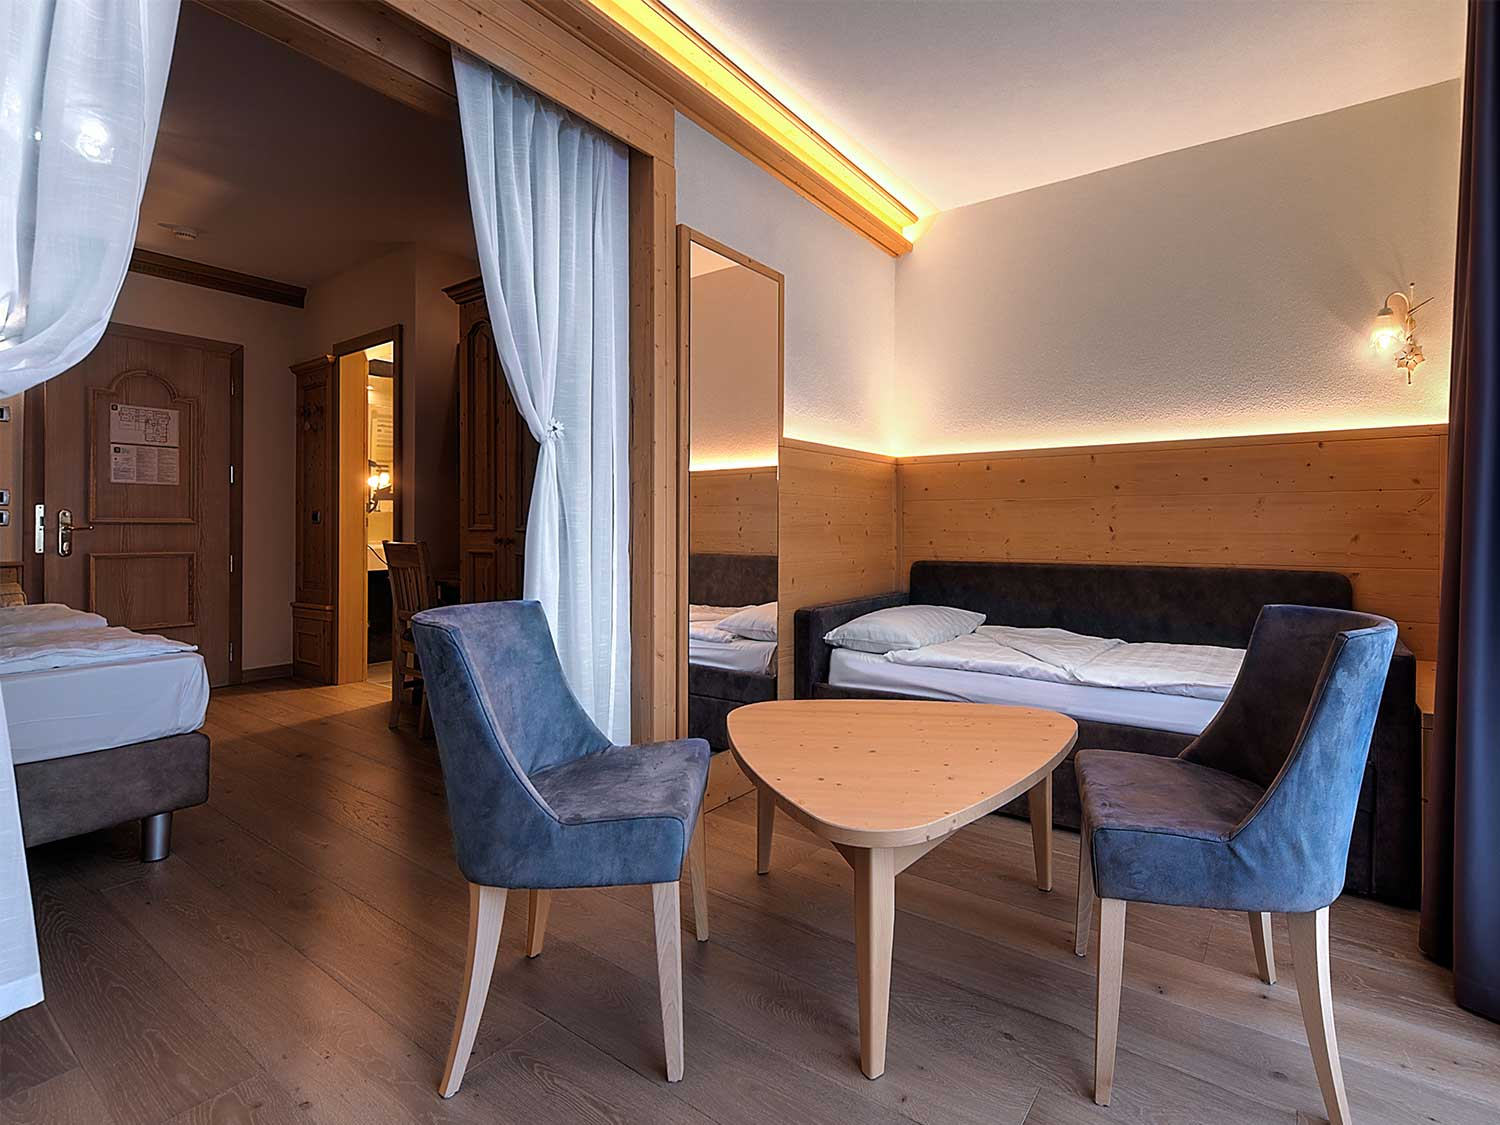 Wellness Hotel 3 Stelle Superior A Folgarida Le Confortevoli Camere Junior Suite Affacciate - Hotel Caminetto Folgarida Camere